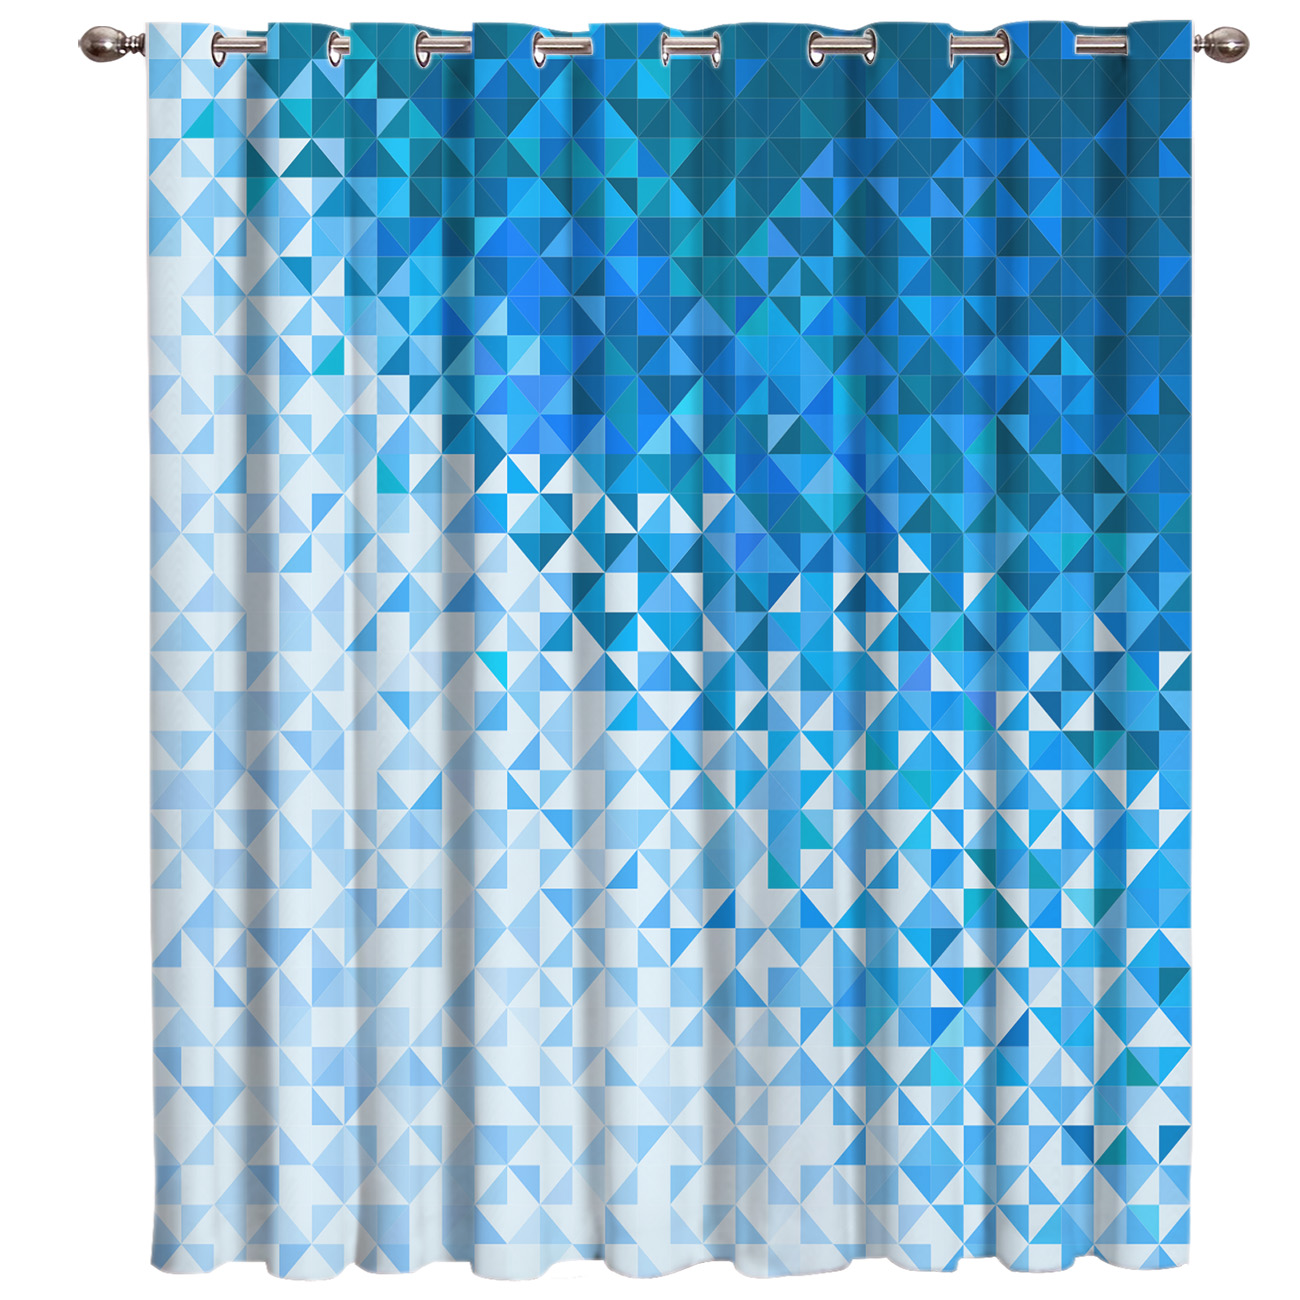 Blue Disco Mosaic Texture Room Curtains Large Window Living Room Bathroom Floral Decor Kids Window Treatment Hardware Sets